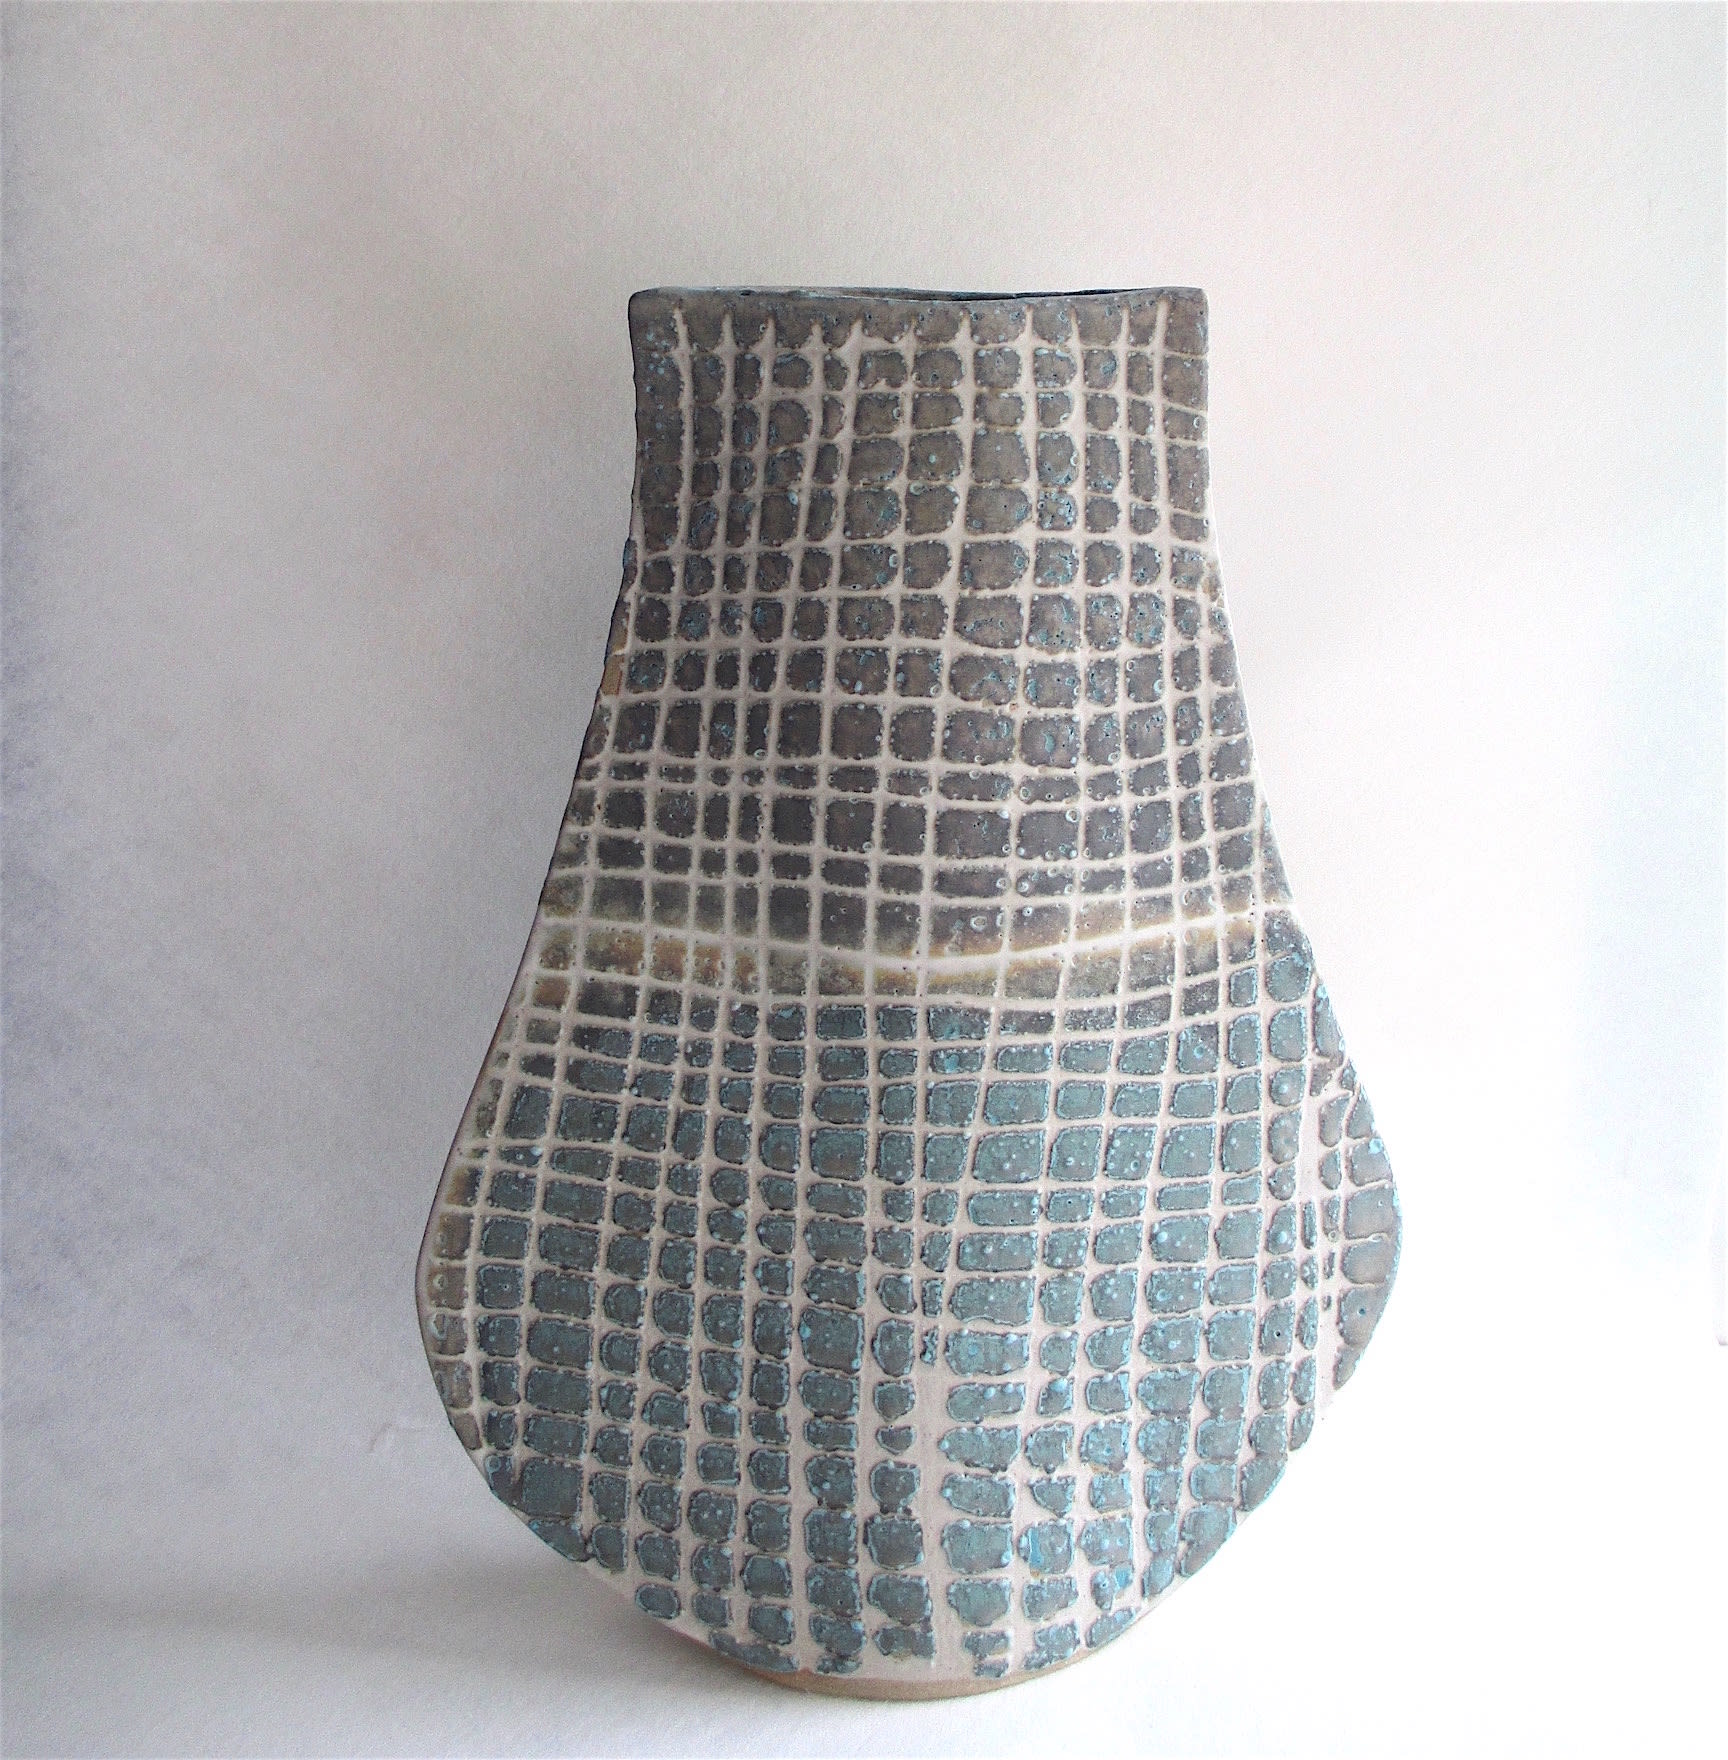 """<span class=""""link fancybox-details-link""""><a href=""""/artists/44-sarah-perry/works/5963-sarah-perry-grid-bottle-ellipse-2018/"""">View Detail Page</a></span><div class=""""artist""""><strong>Sarah Perry</strong></div> b. 1945 <div class=""""title""""><em>Grid Bottle Ellipse</em>, 2018</div> <div class=""""signed_and_dated"""">impressed with the artist's seal mark 'SP'</div> <div class=""""medium"""">stoneware</div> <div class=""""dimensions"""">h 43</div><div class=""""copyright_line"""">Own Art: £ 70.50 x 10 Months, 0% APR</div>"""